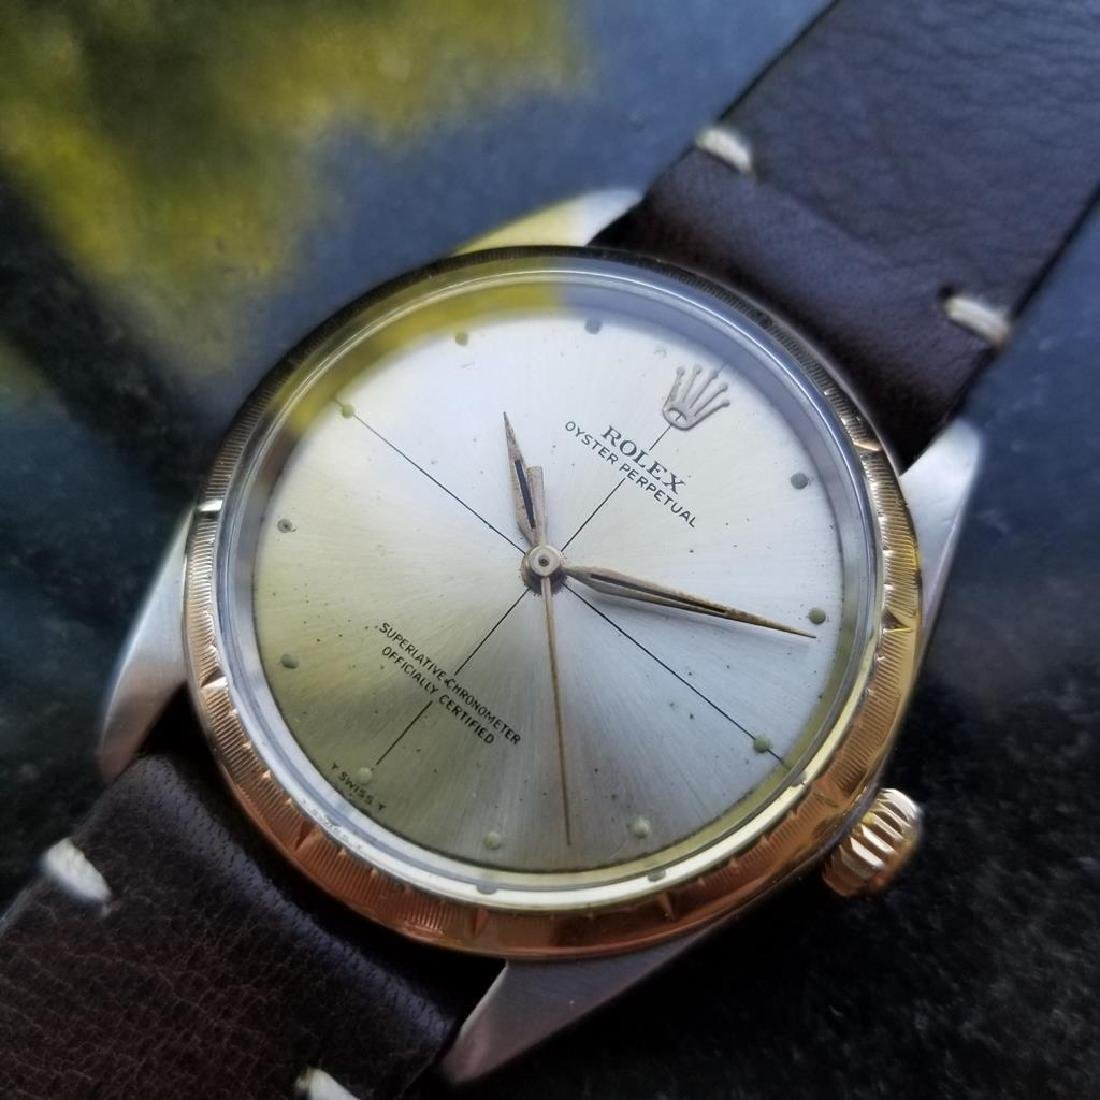 ROLEX Men's 18K and SS Oyster Perpetual 1008 Zephyr